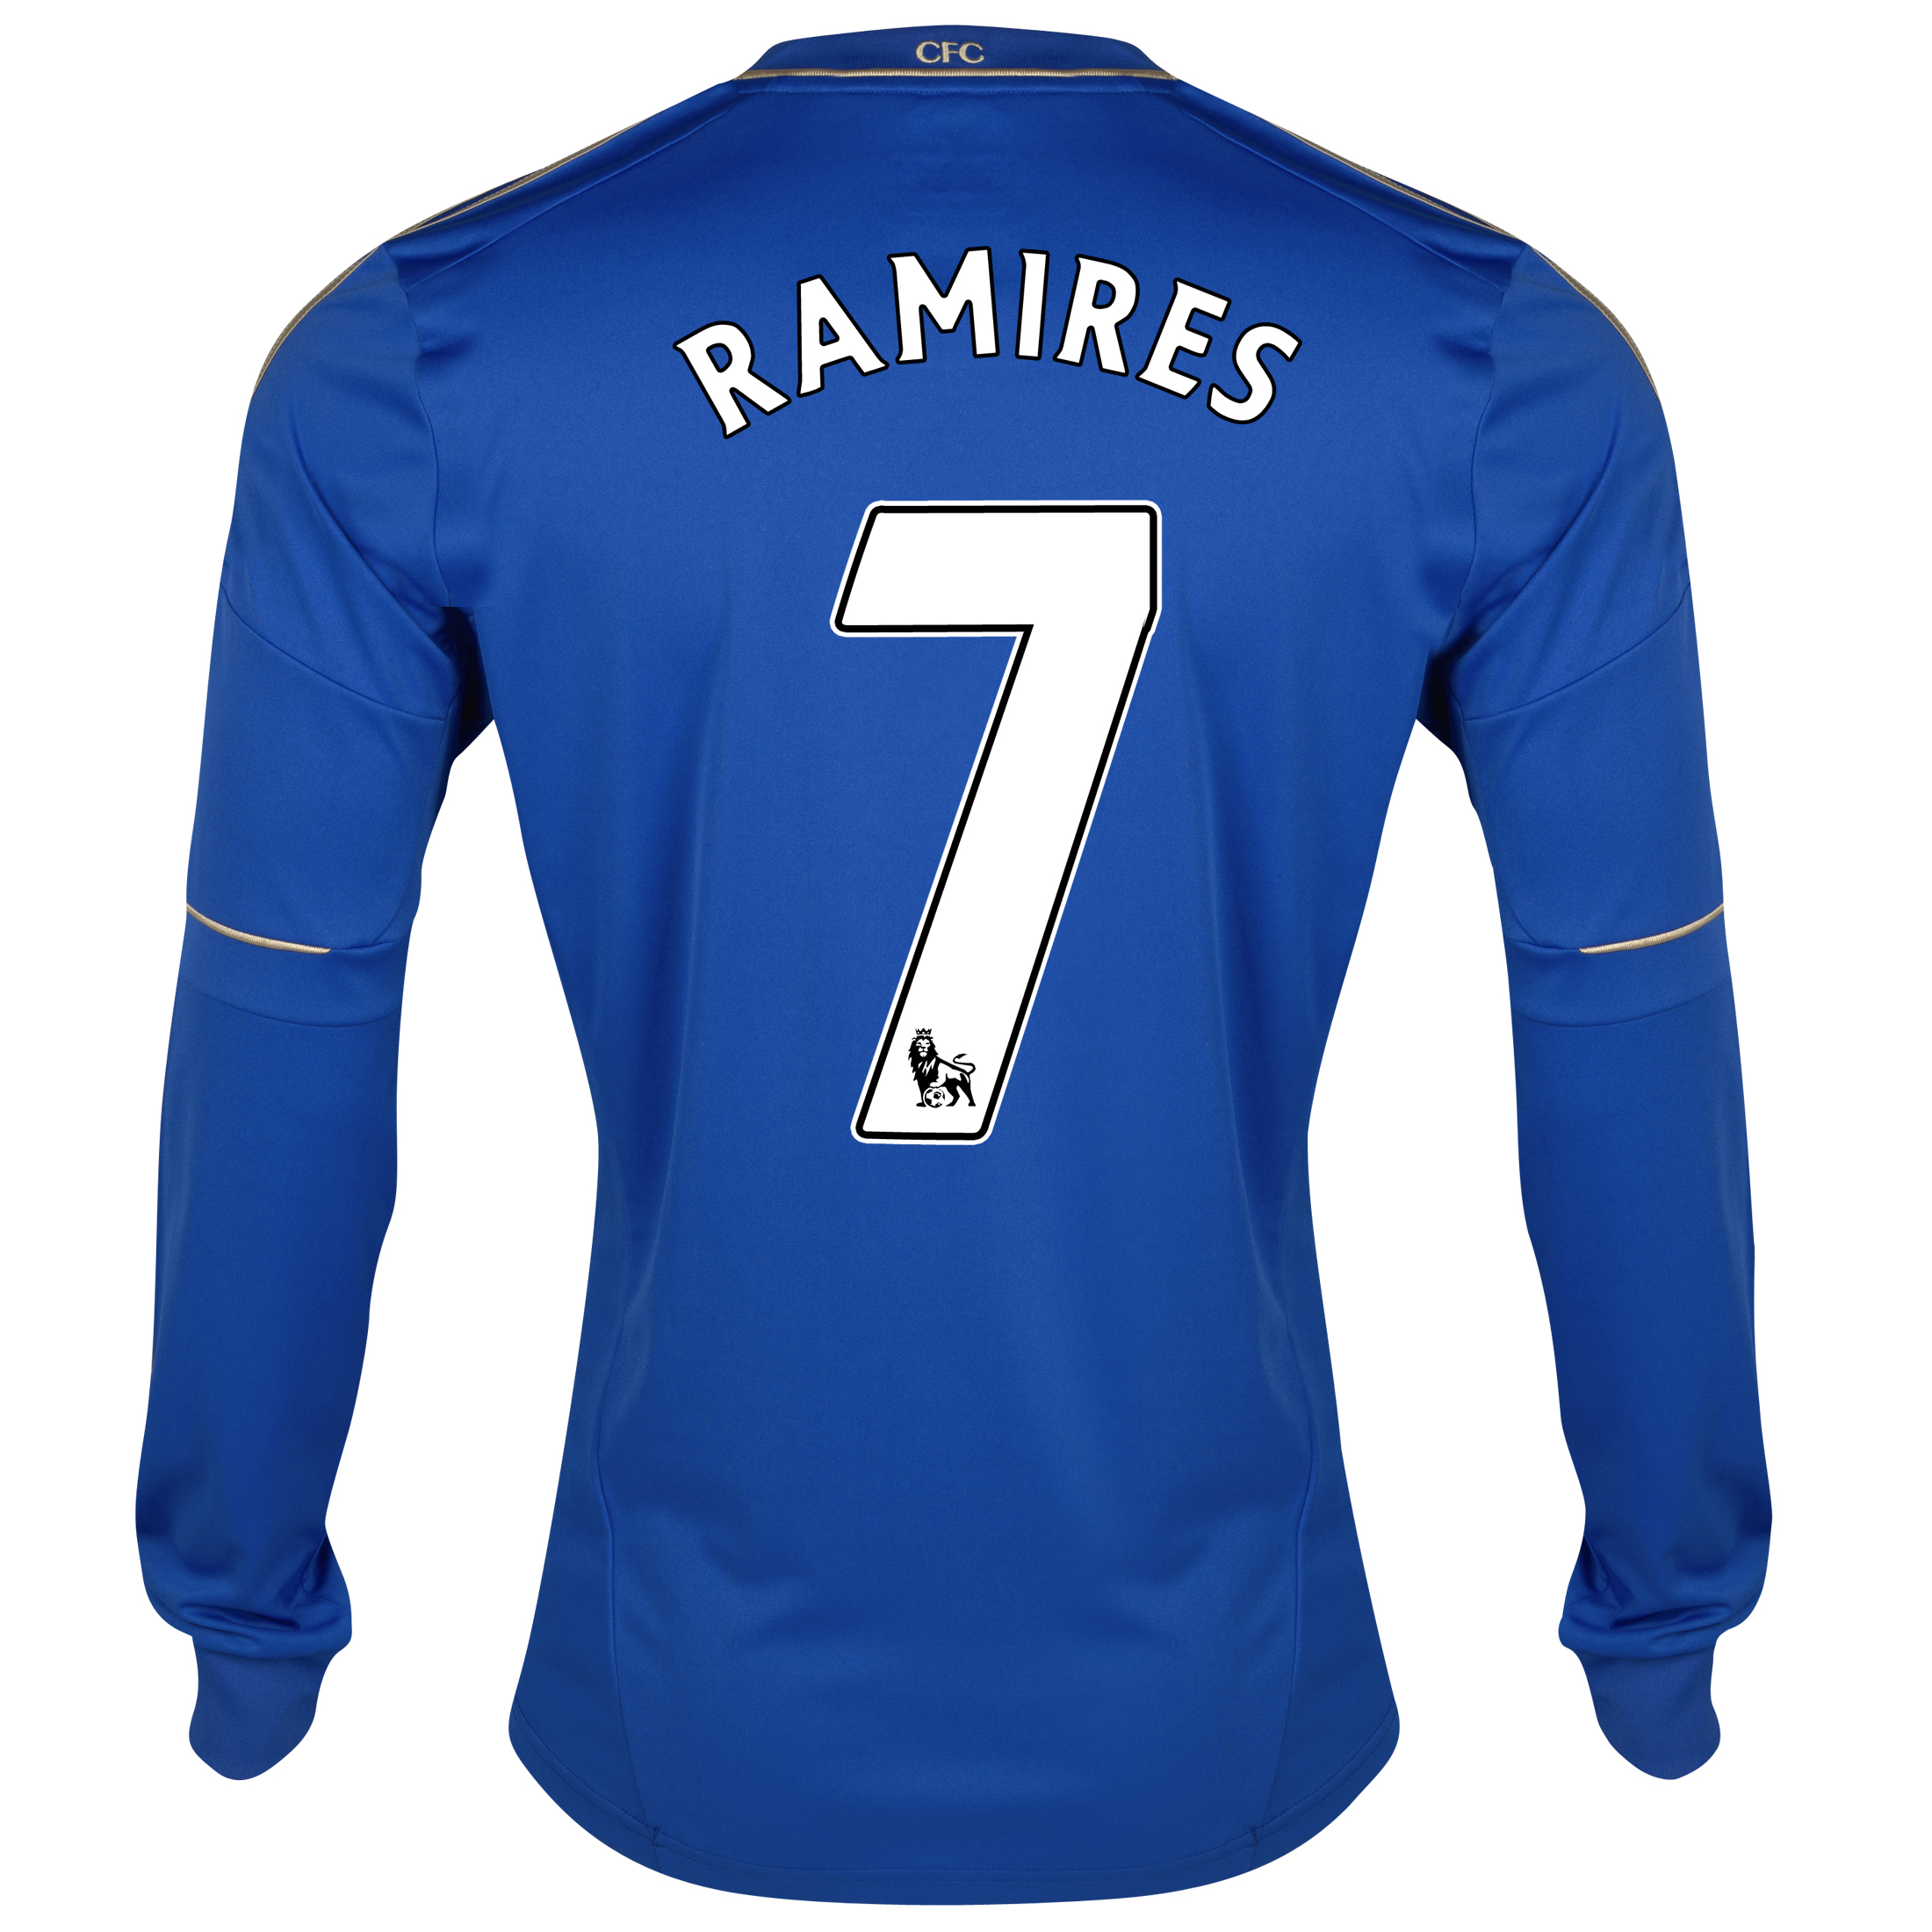 Chelsea Home Shirt 2012/13 - Long Sleeved - Youths with Ramires 7 printing